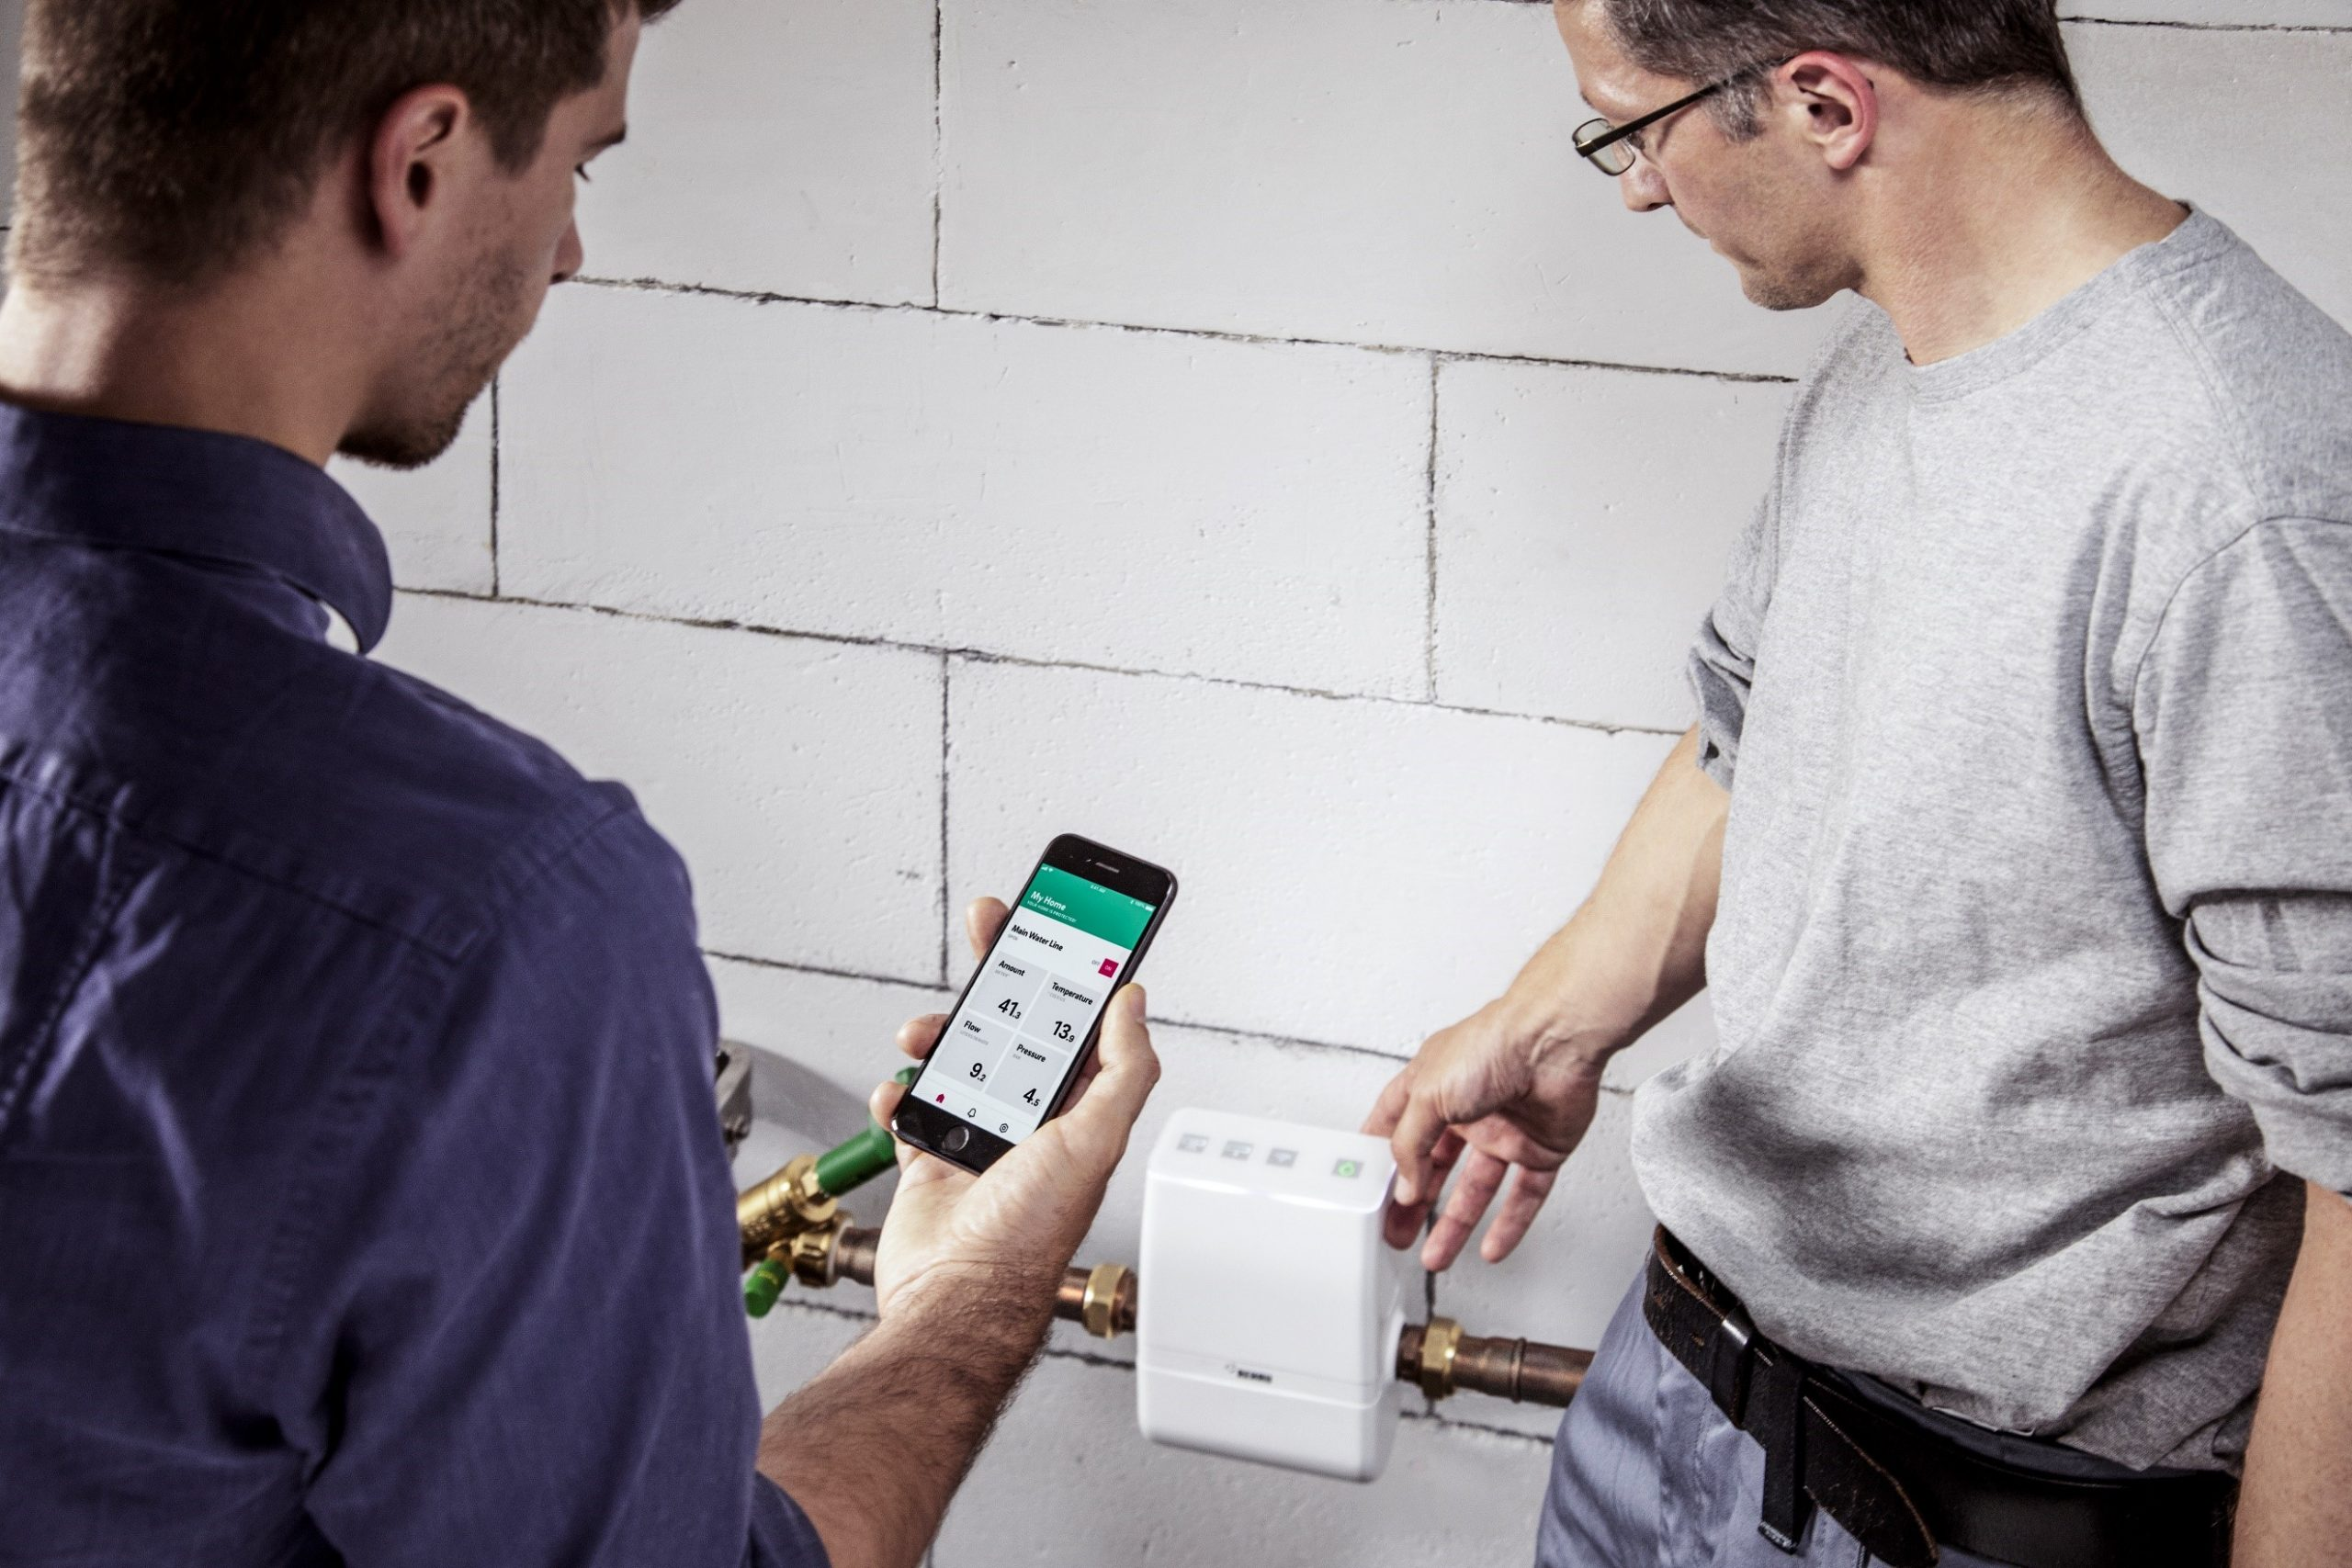 Commercial building professionals urged to consider ultrasonic technology to end water damage woes